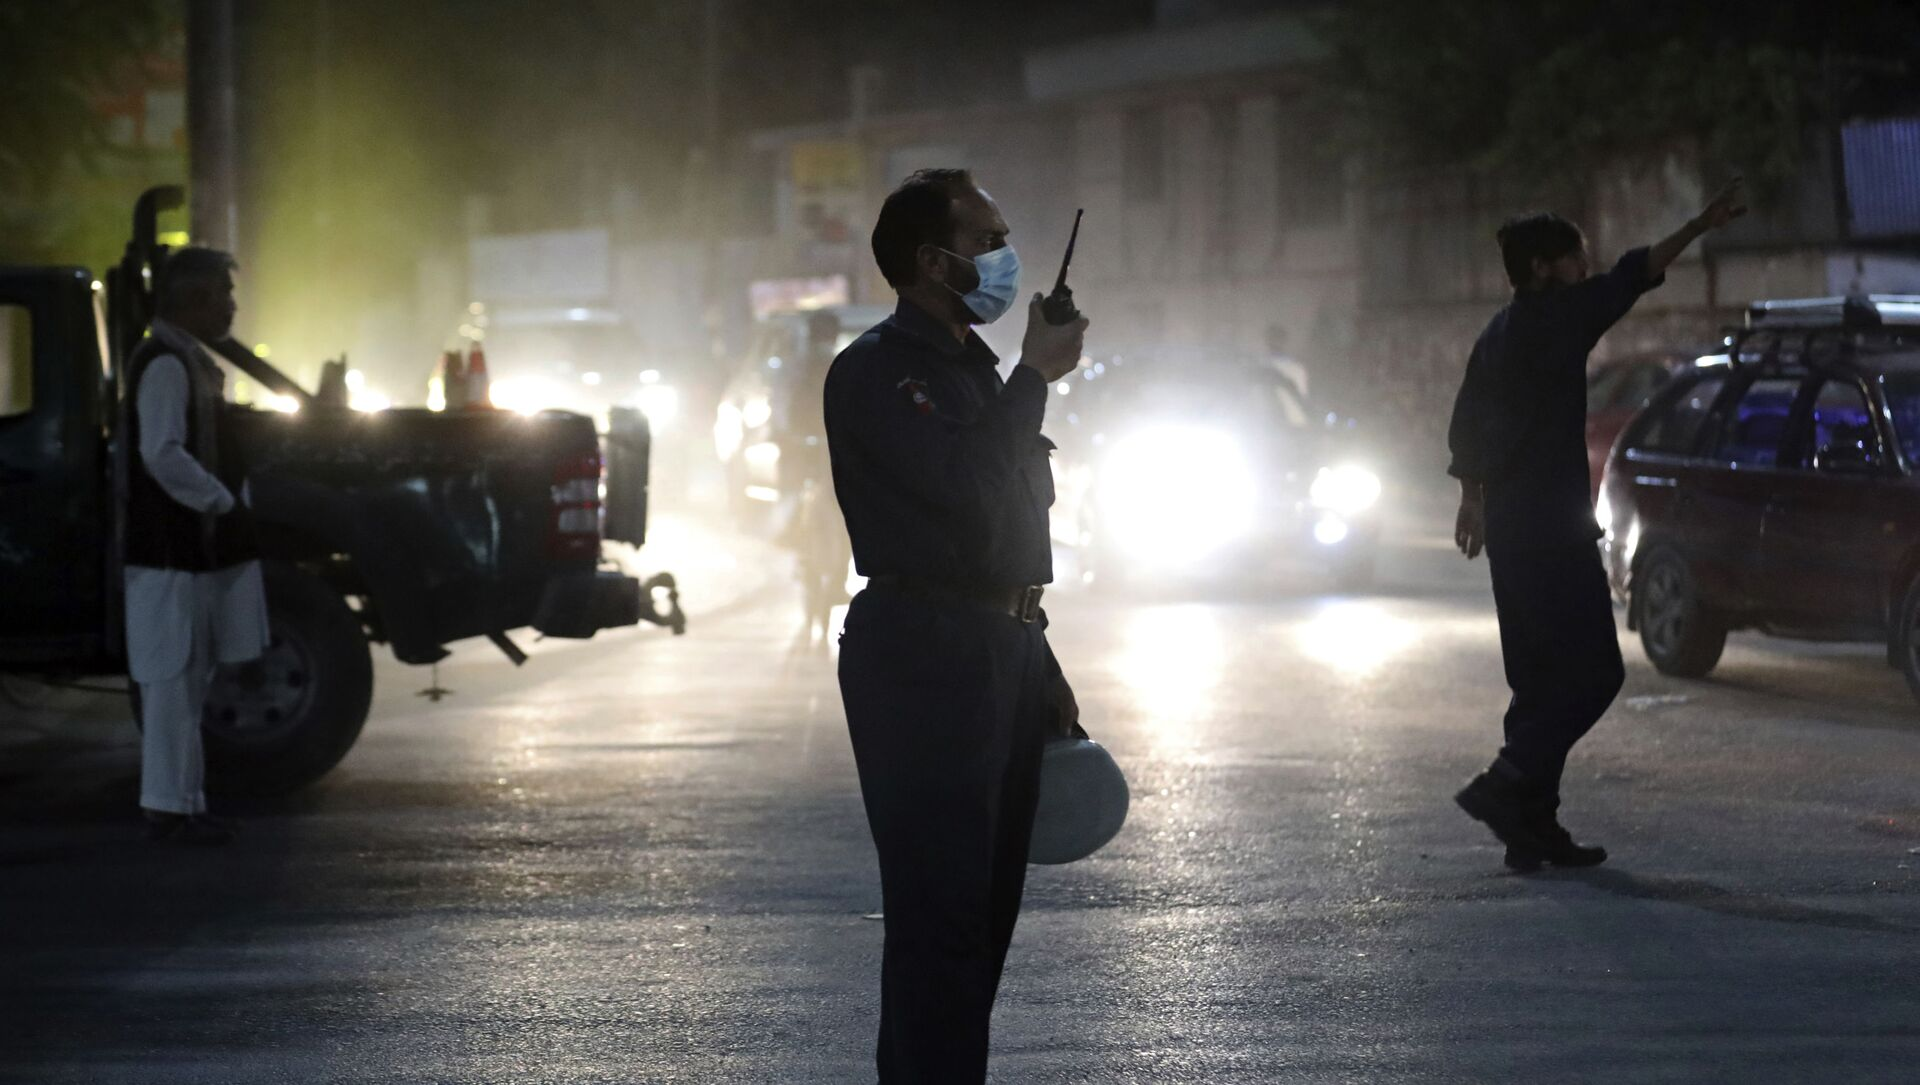 Afghan security personnel work at the site of a powerful explosion in Kabul, Afghanistan, Tuesday, Aug. 3, 2021. - Sputnik International, 1920, 03.08.2021